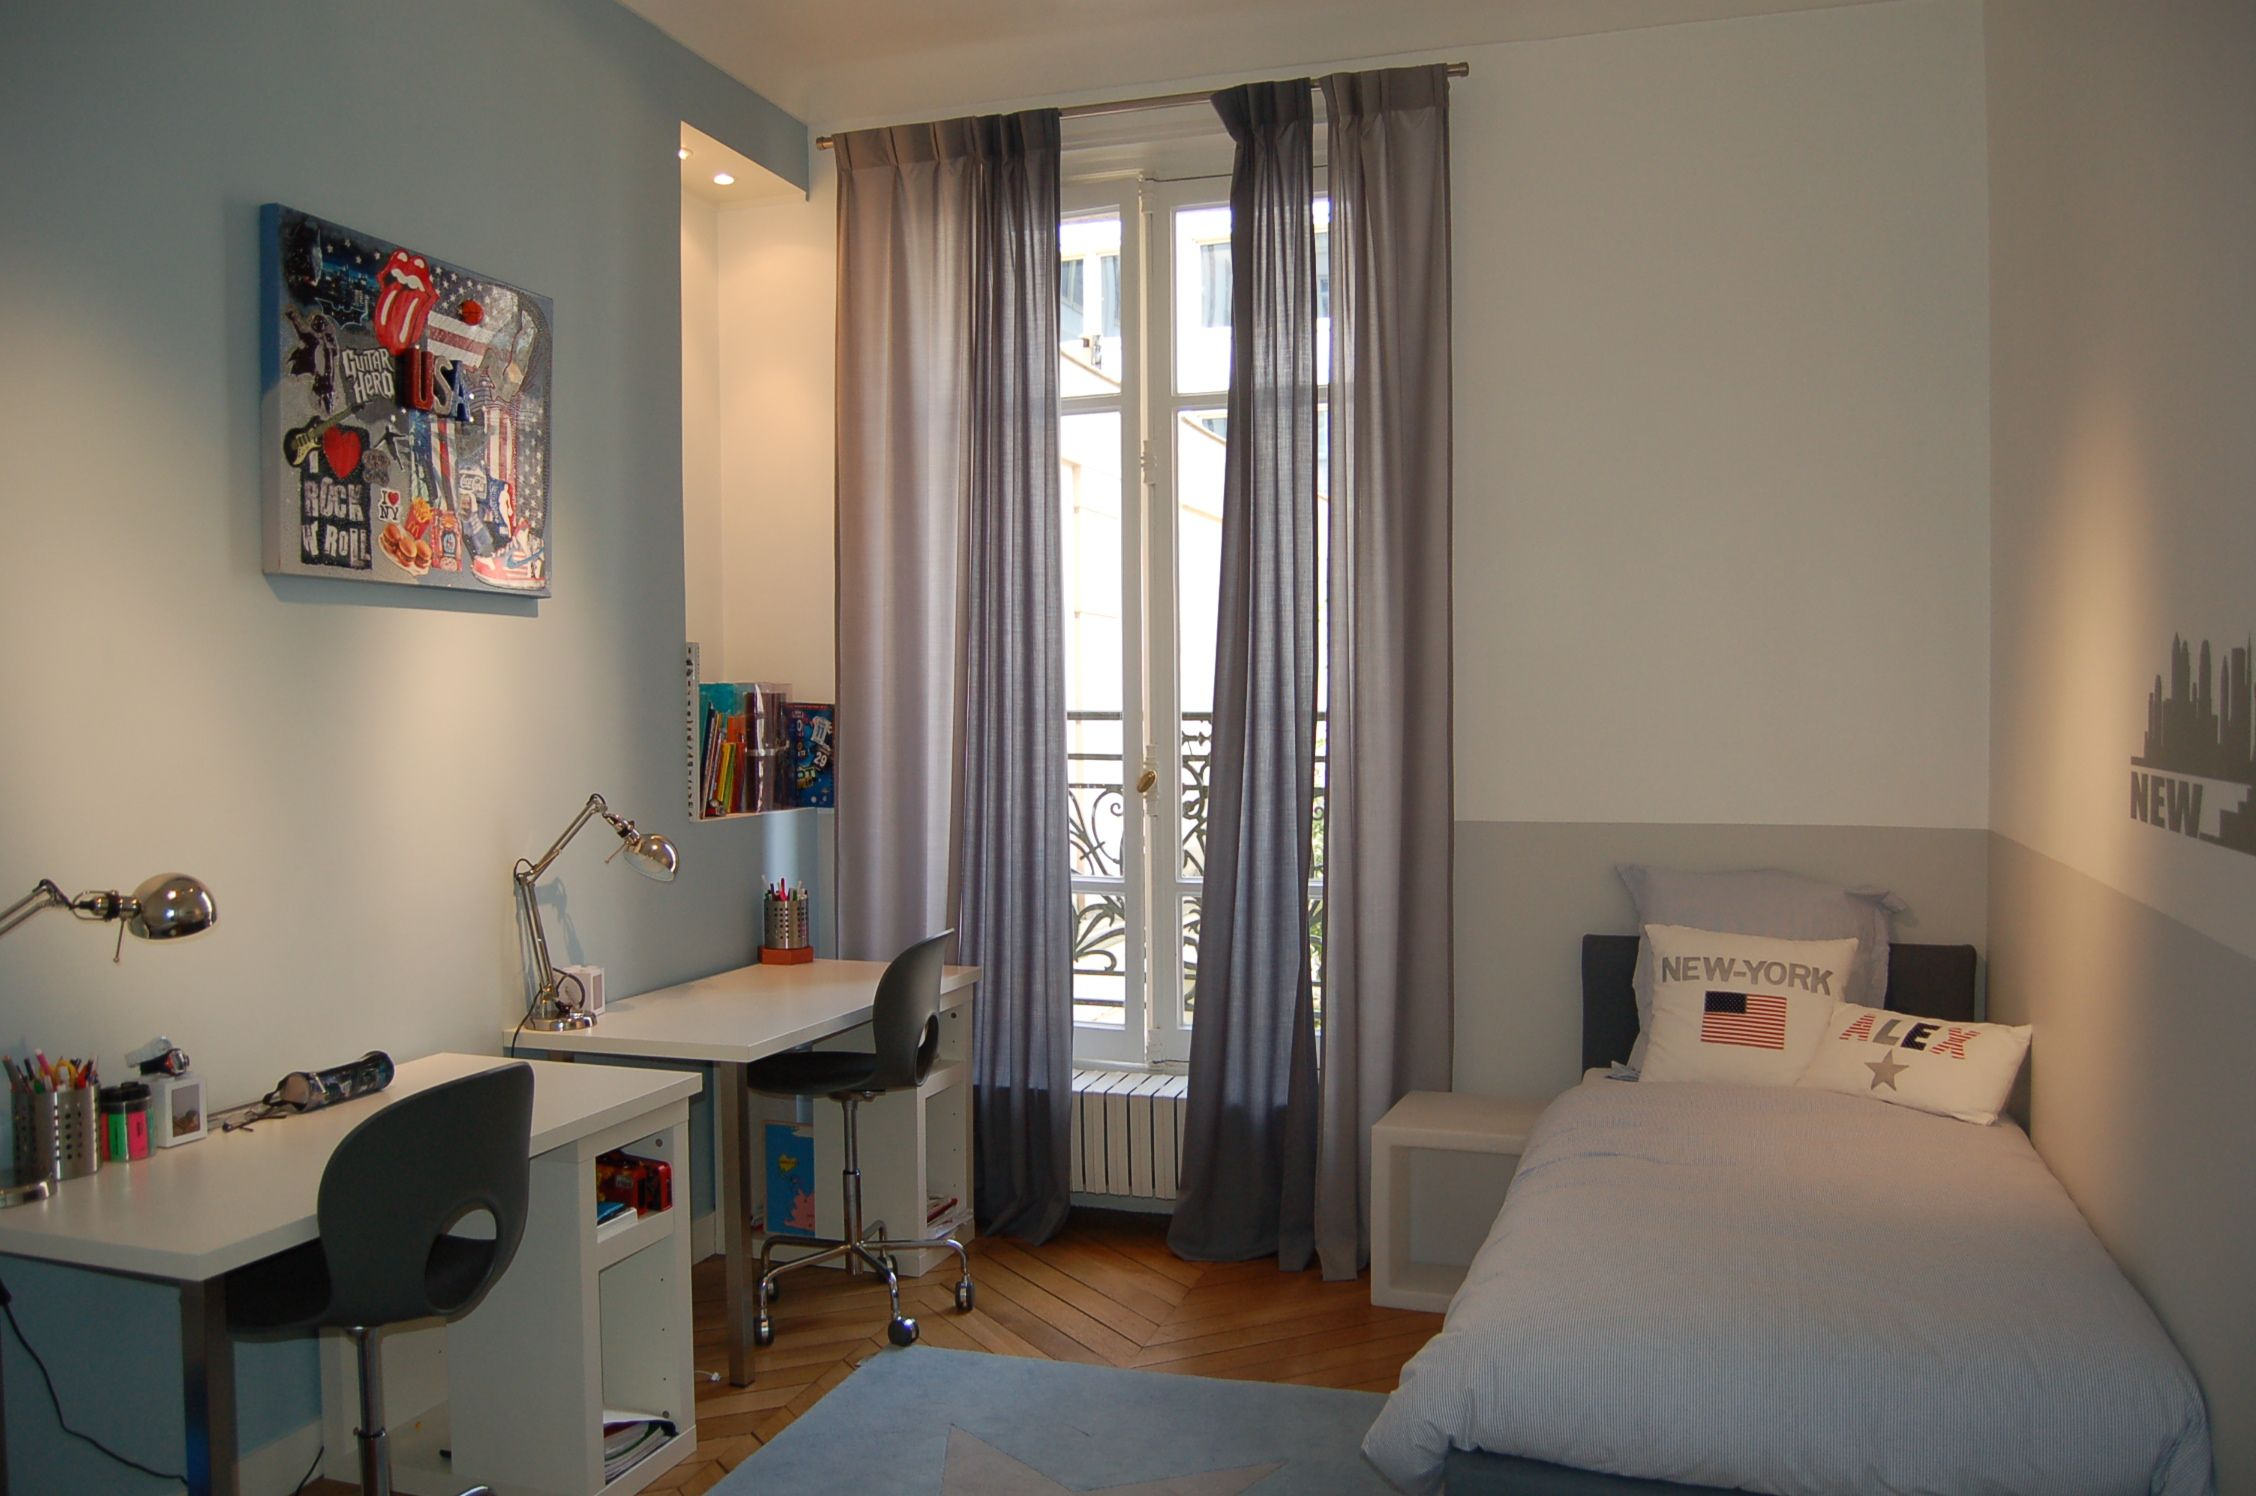 Chambre Enfant New York Chambre New York New York Chambre Grise Chambre Garçon Chambre